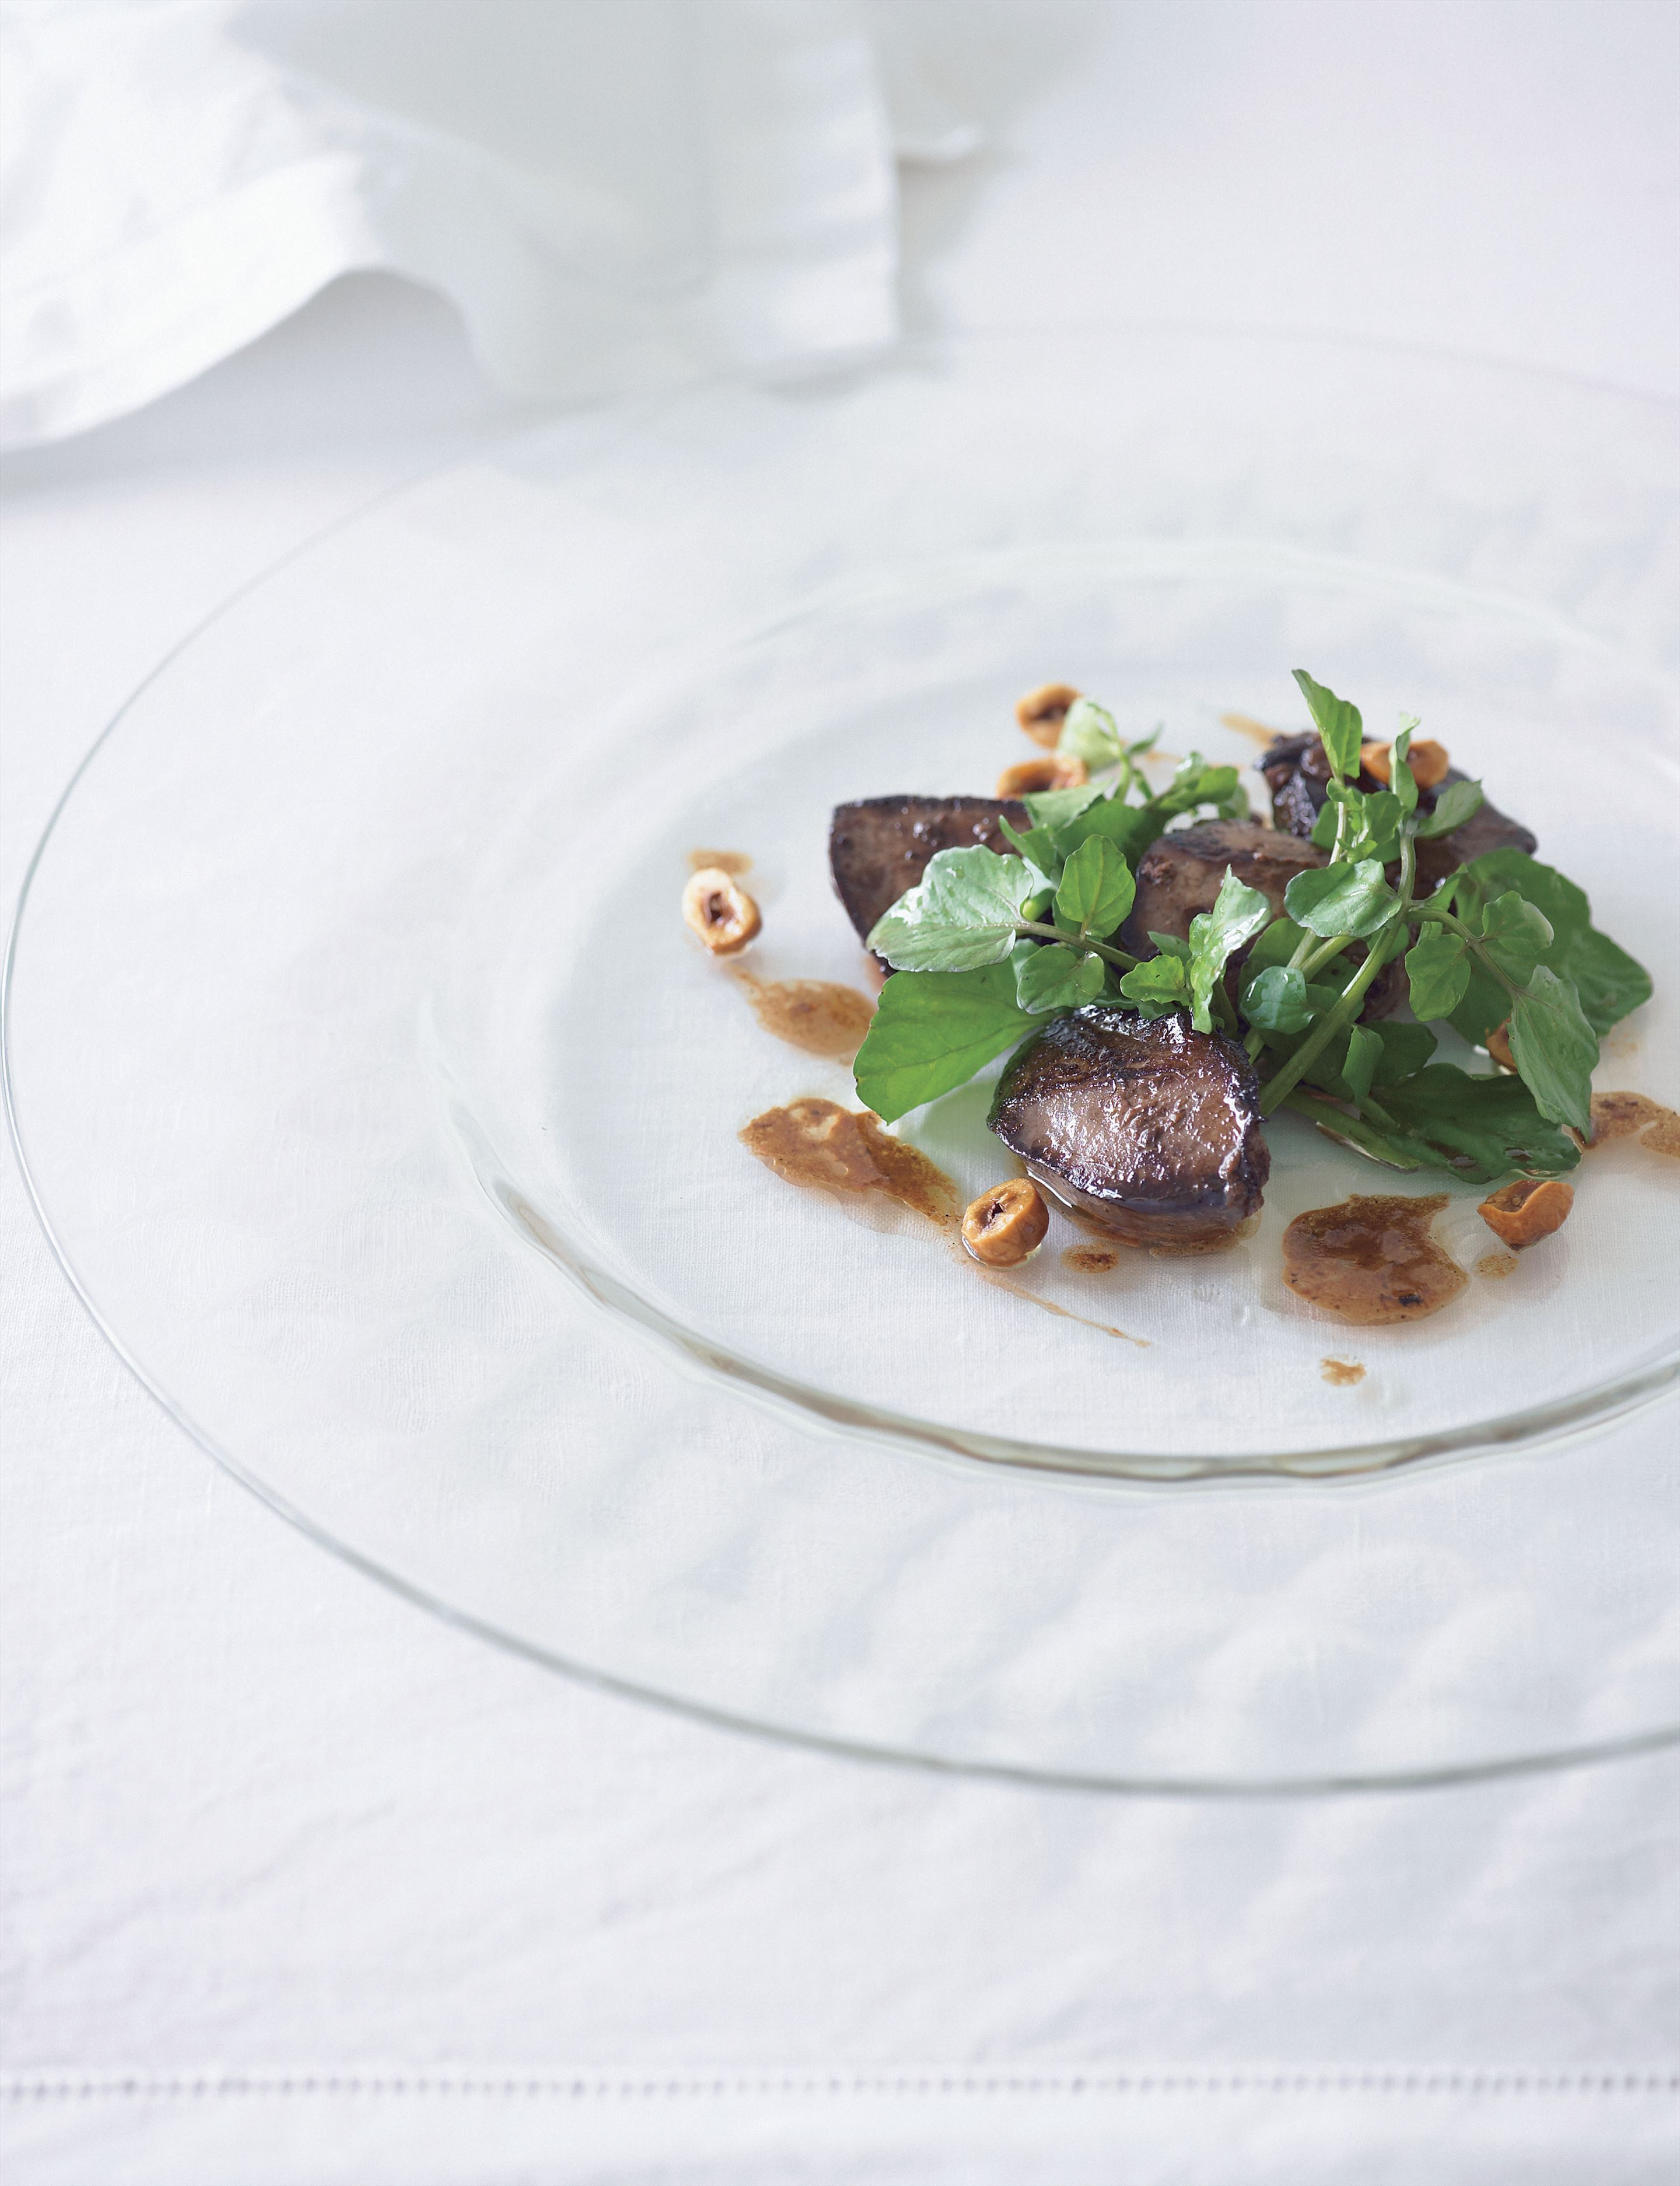 Fricassée of duck livers with watercress and roasted hazelnuts